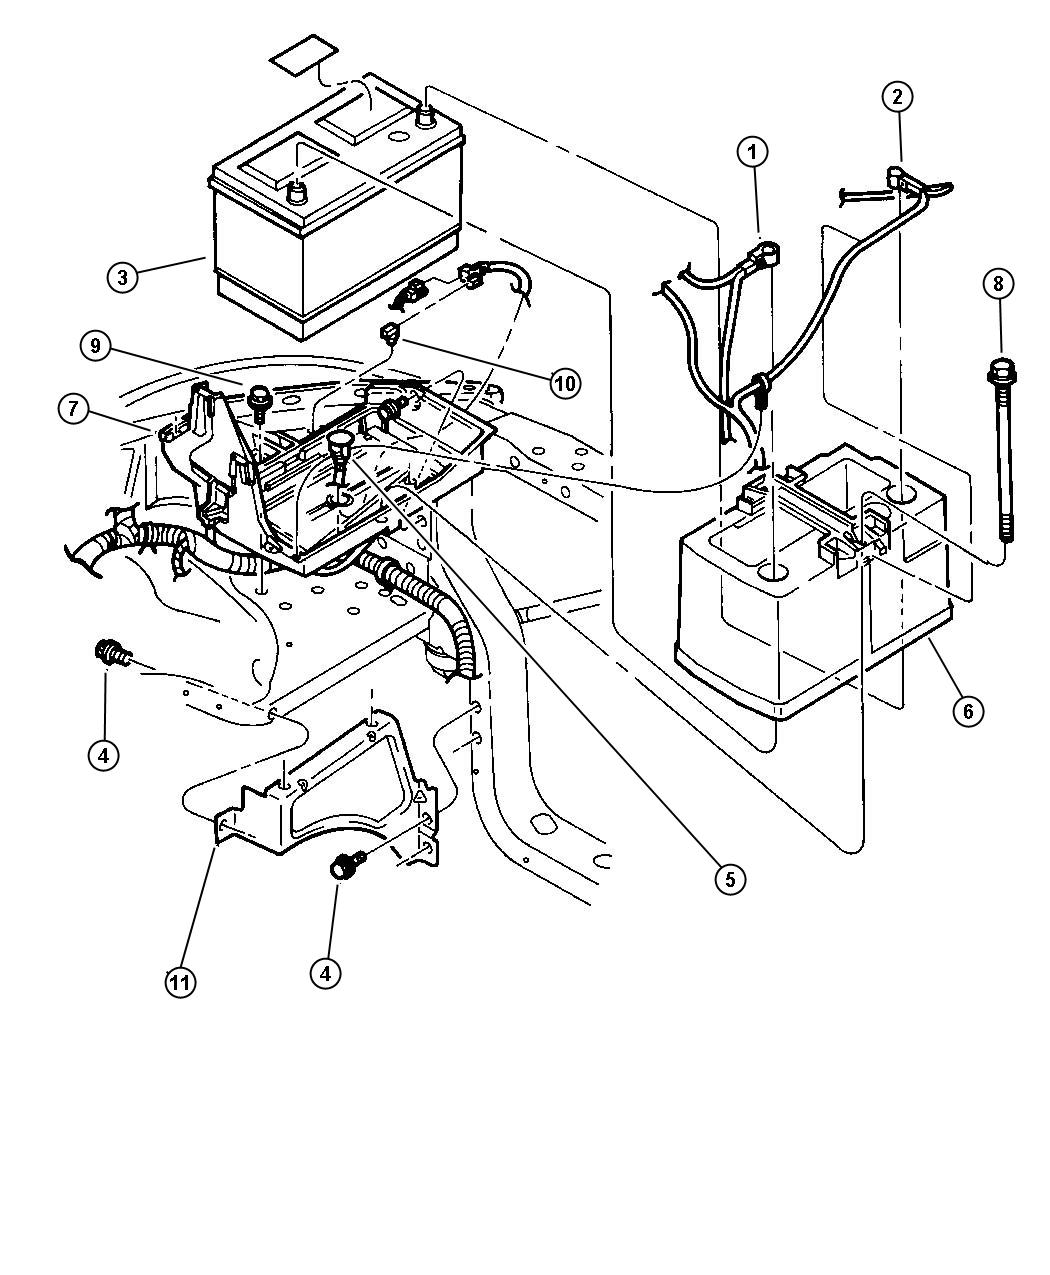 98 dodge dakota wiring diagram one room electrical 2000 durango battery tray and cables